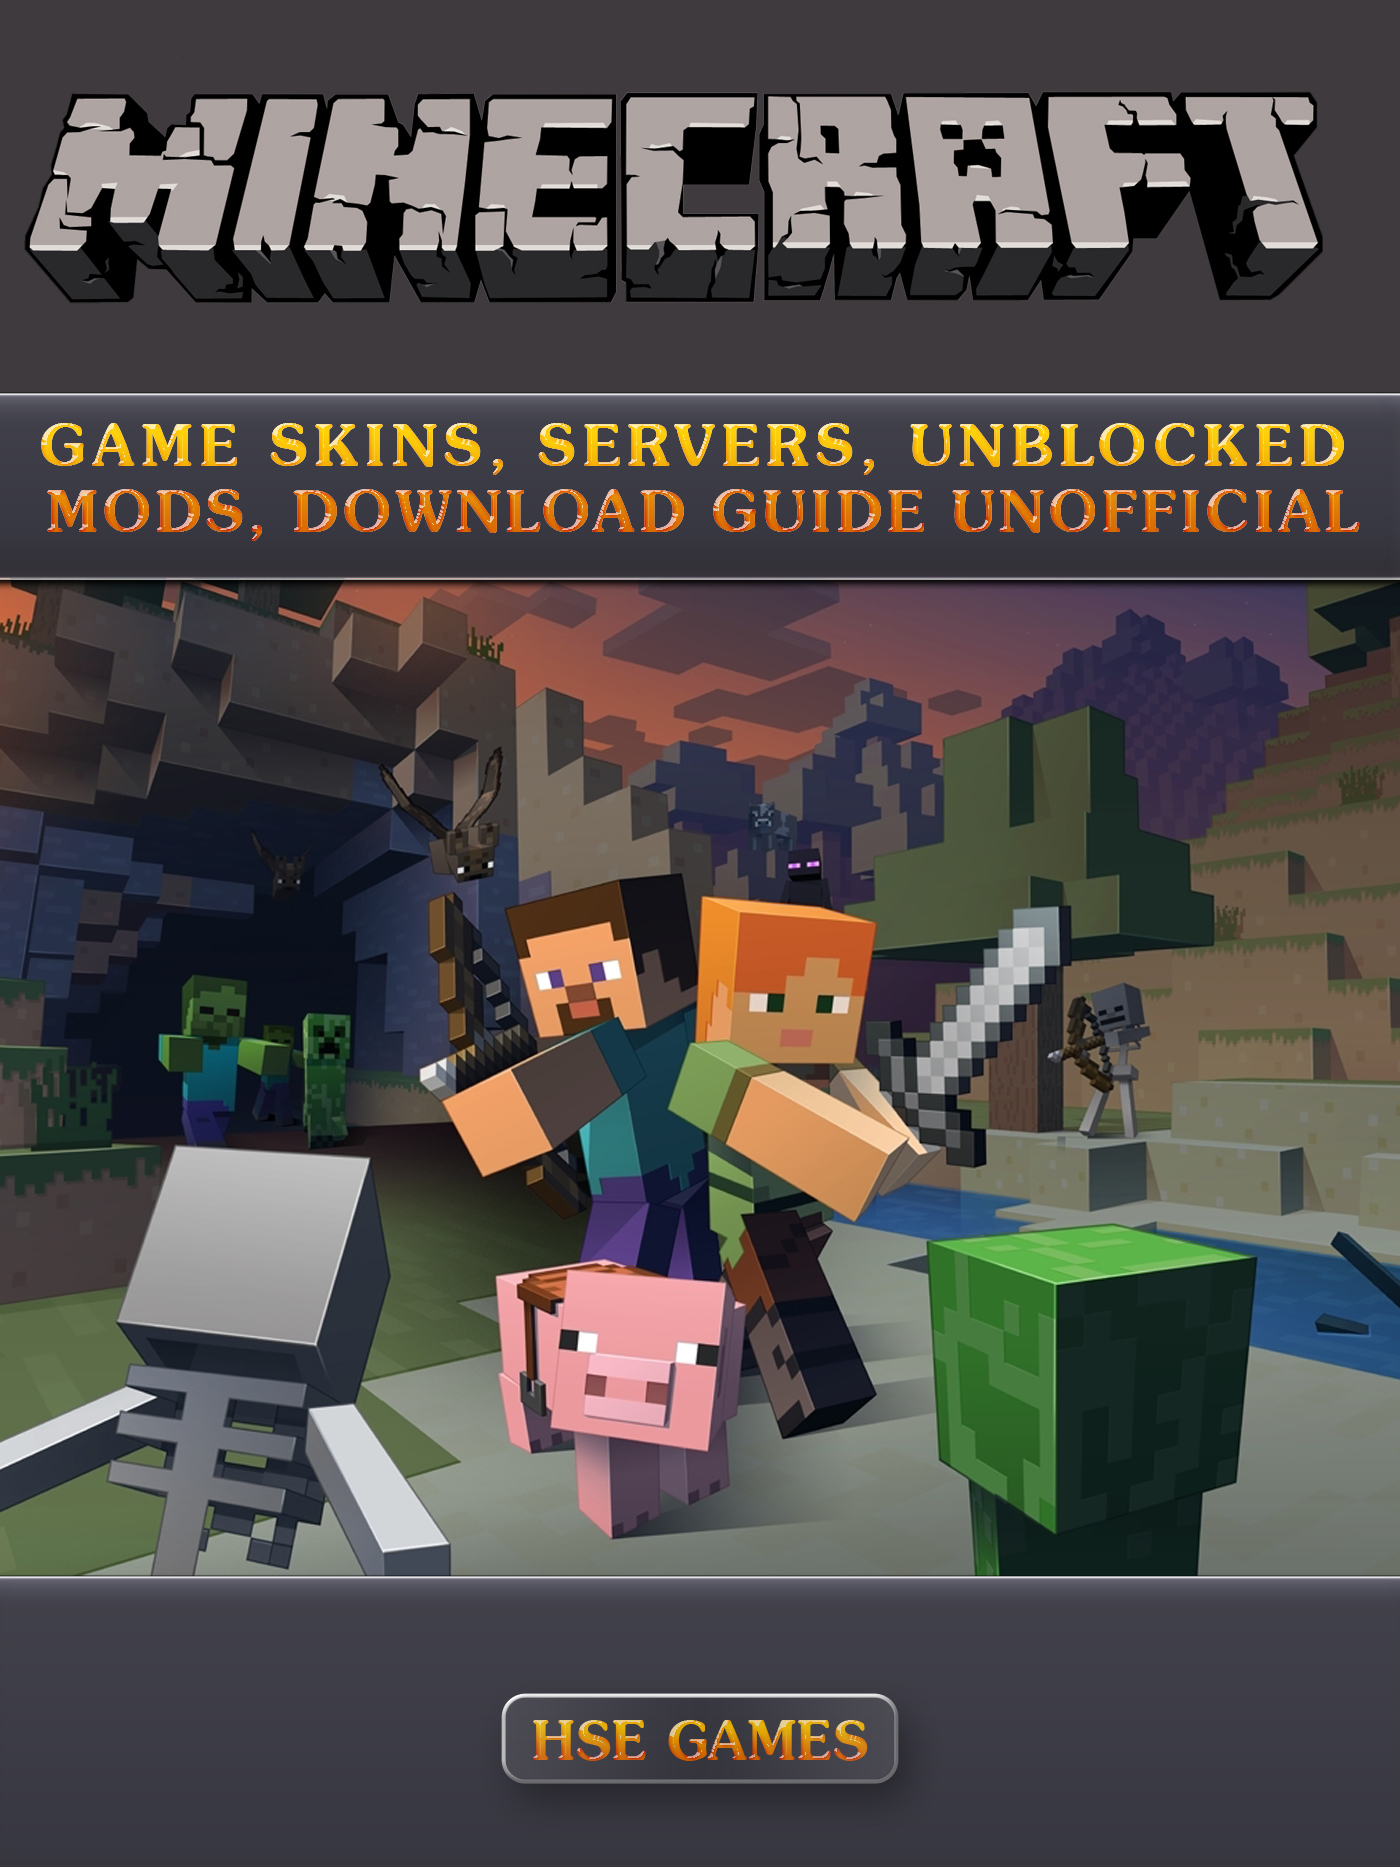 Minecraft Game Skins, Servers, Unblocked Mods, Download Guide Unofficial,  an Ebook by The Yuw